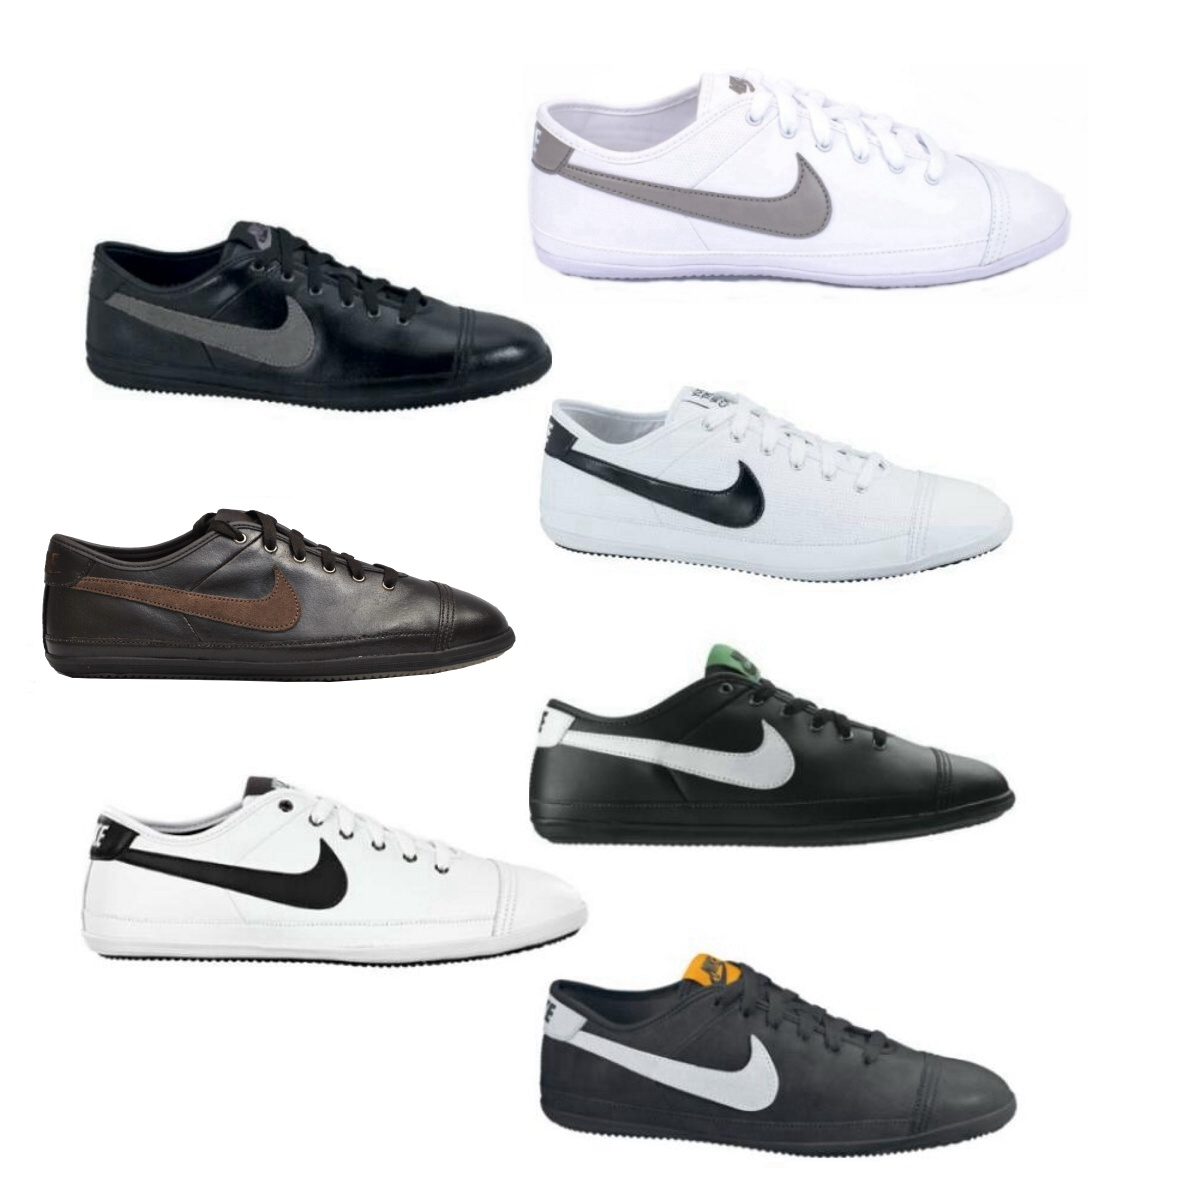 Nike Flash Leather Sneaker Schuhe Herren Diverse Farben | eBay